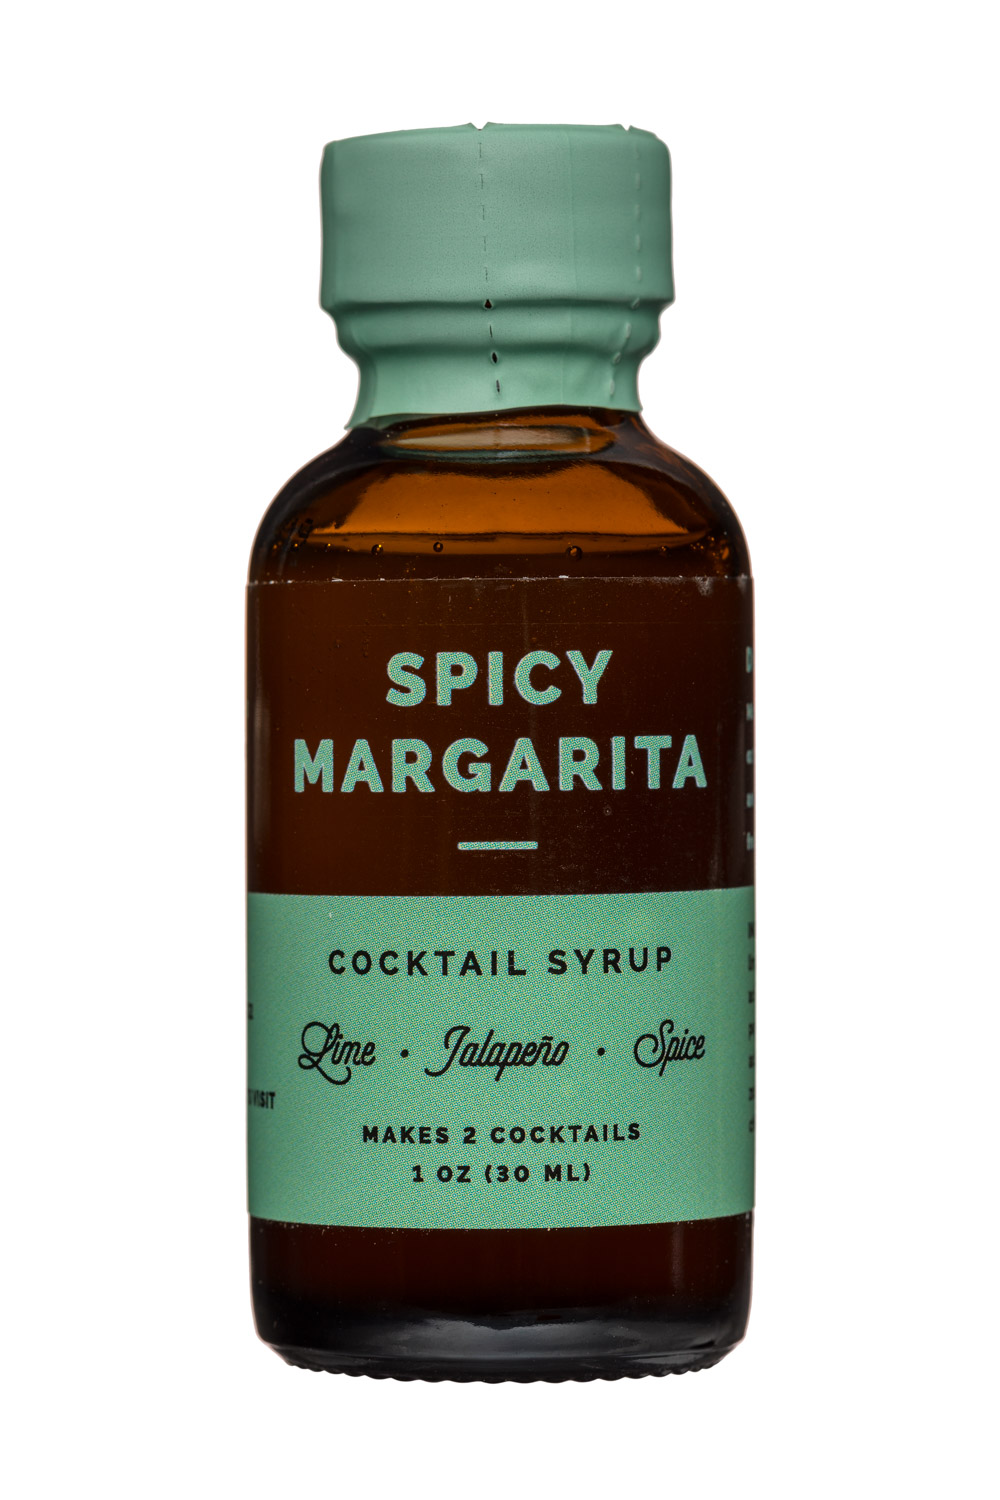 Spicy Margarita Cocktail Syrup Mini